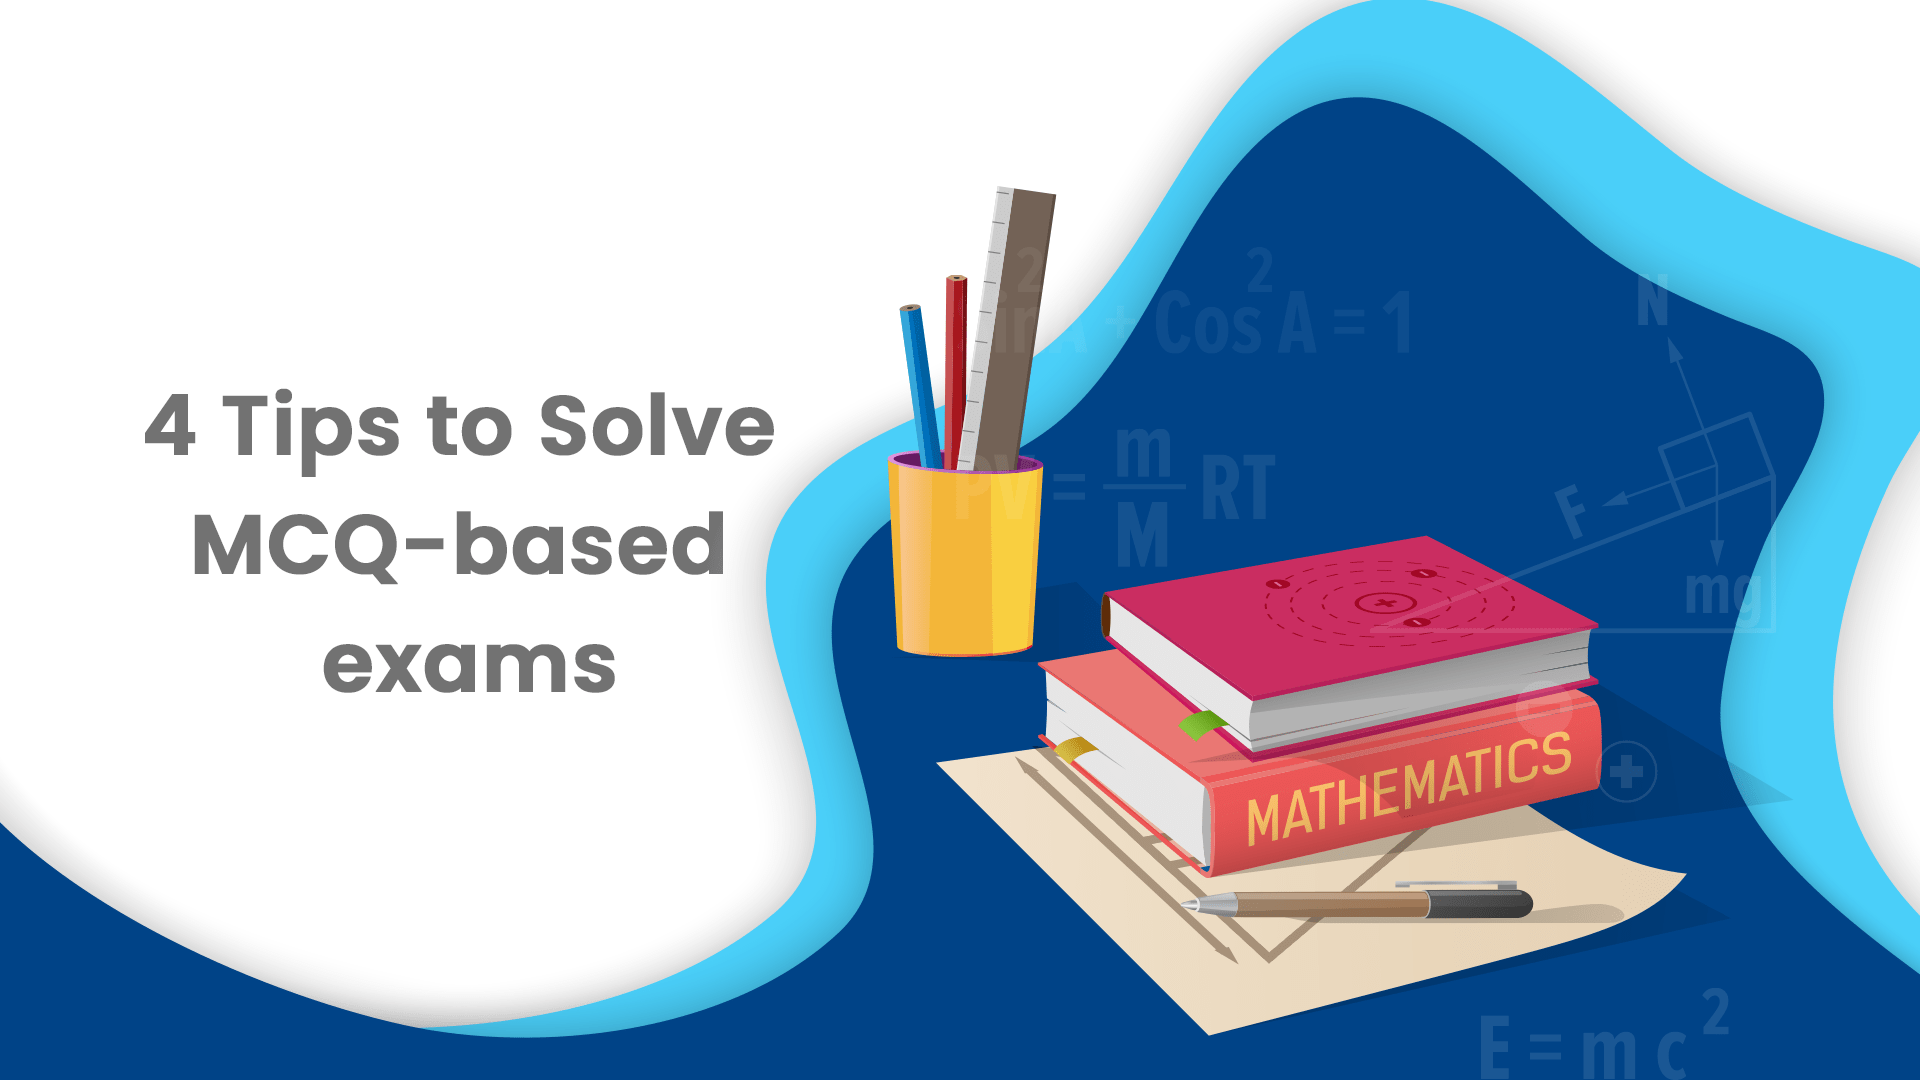 4 Tips to Crack MCQs based on Mathematical and Logical Reasoning